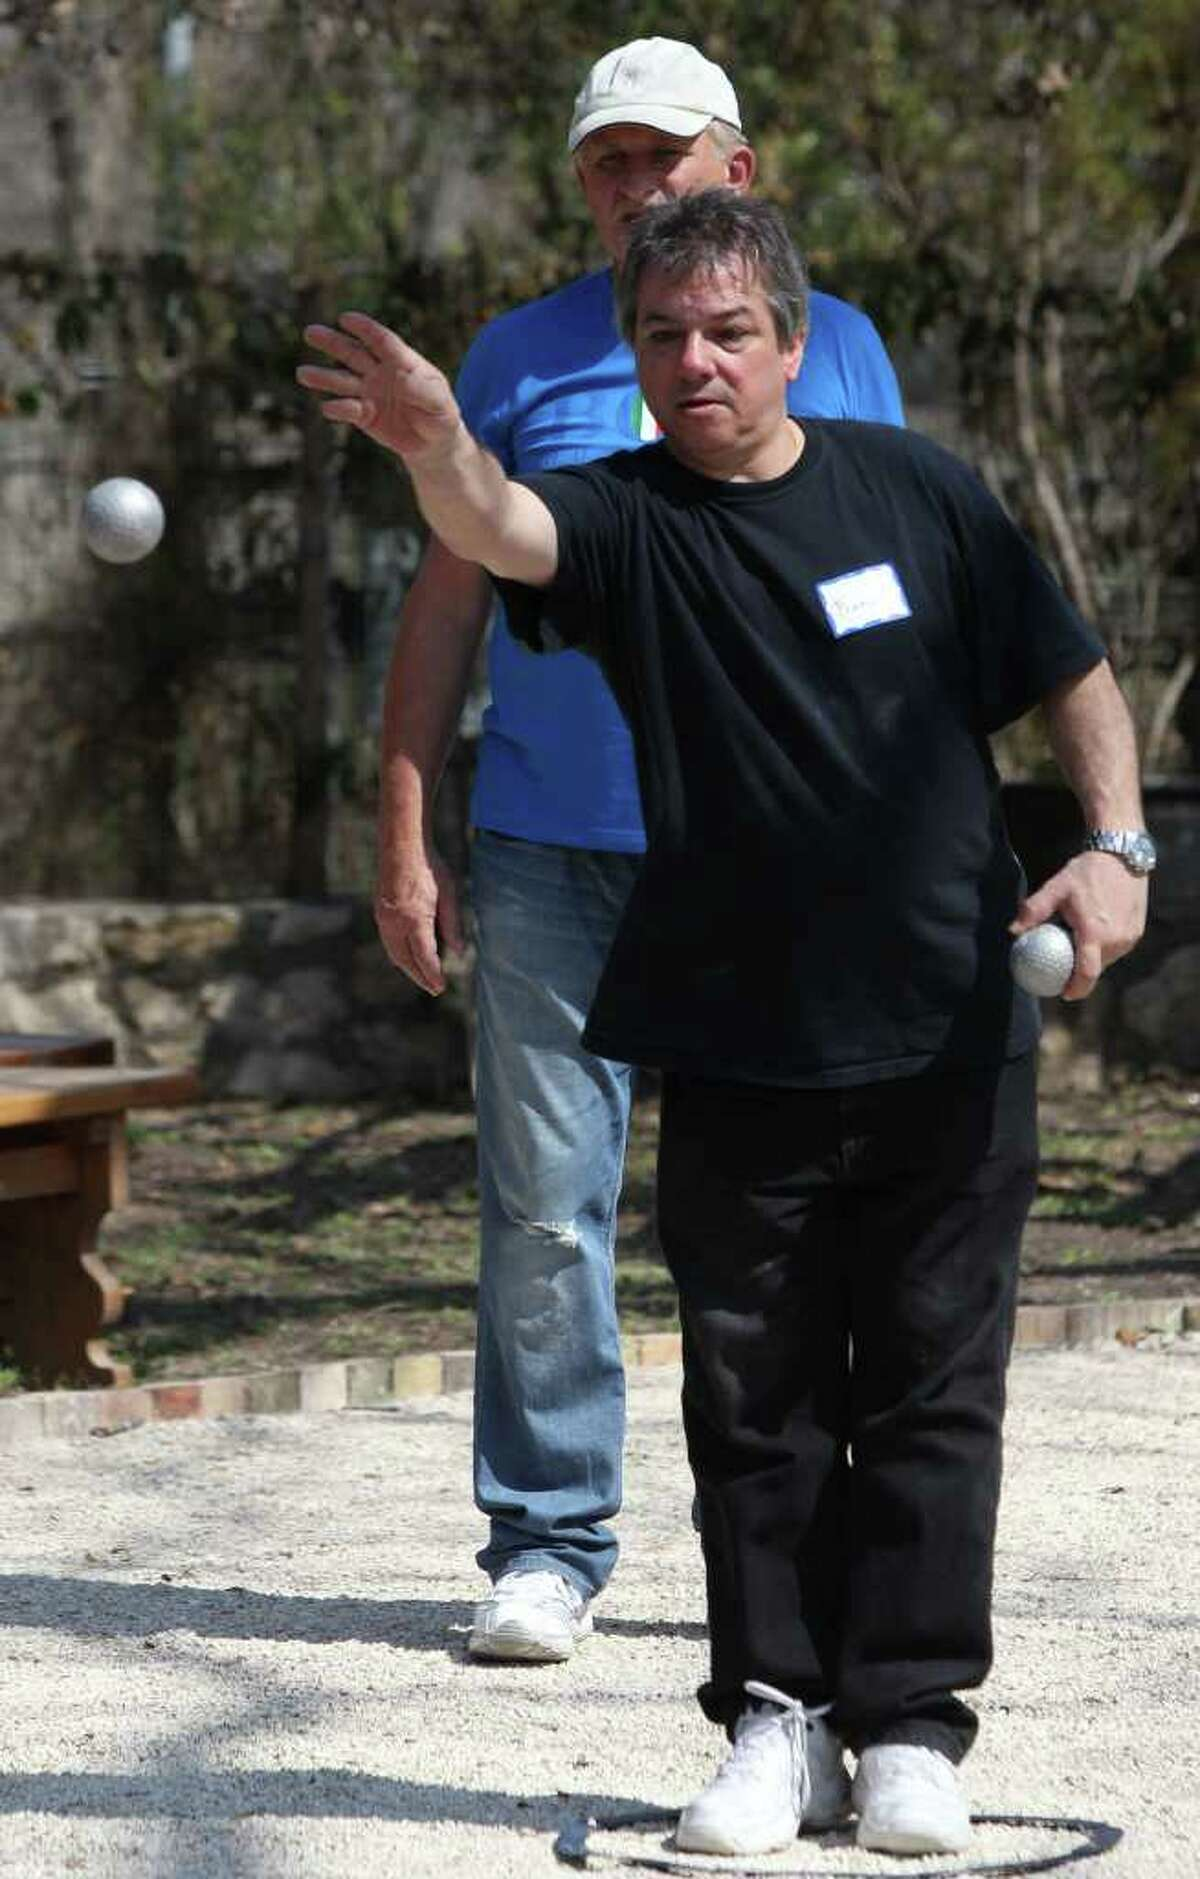 Francis Perrin tosses a ball during a game of petanque on Sunday, Feb. 27, 2011, during the first annual French Cultures Festival. The game is similar to boule and is played chiefly in France.